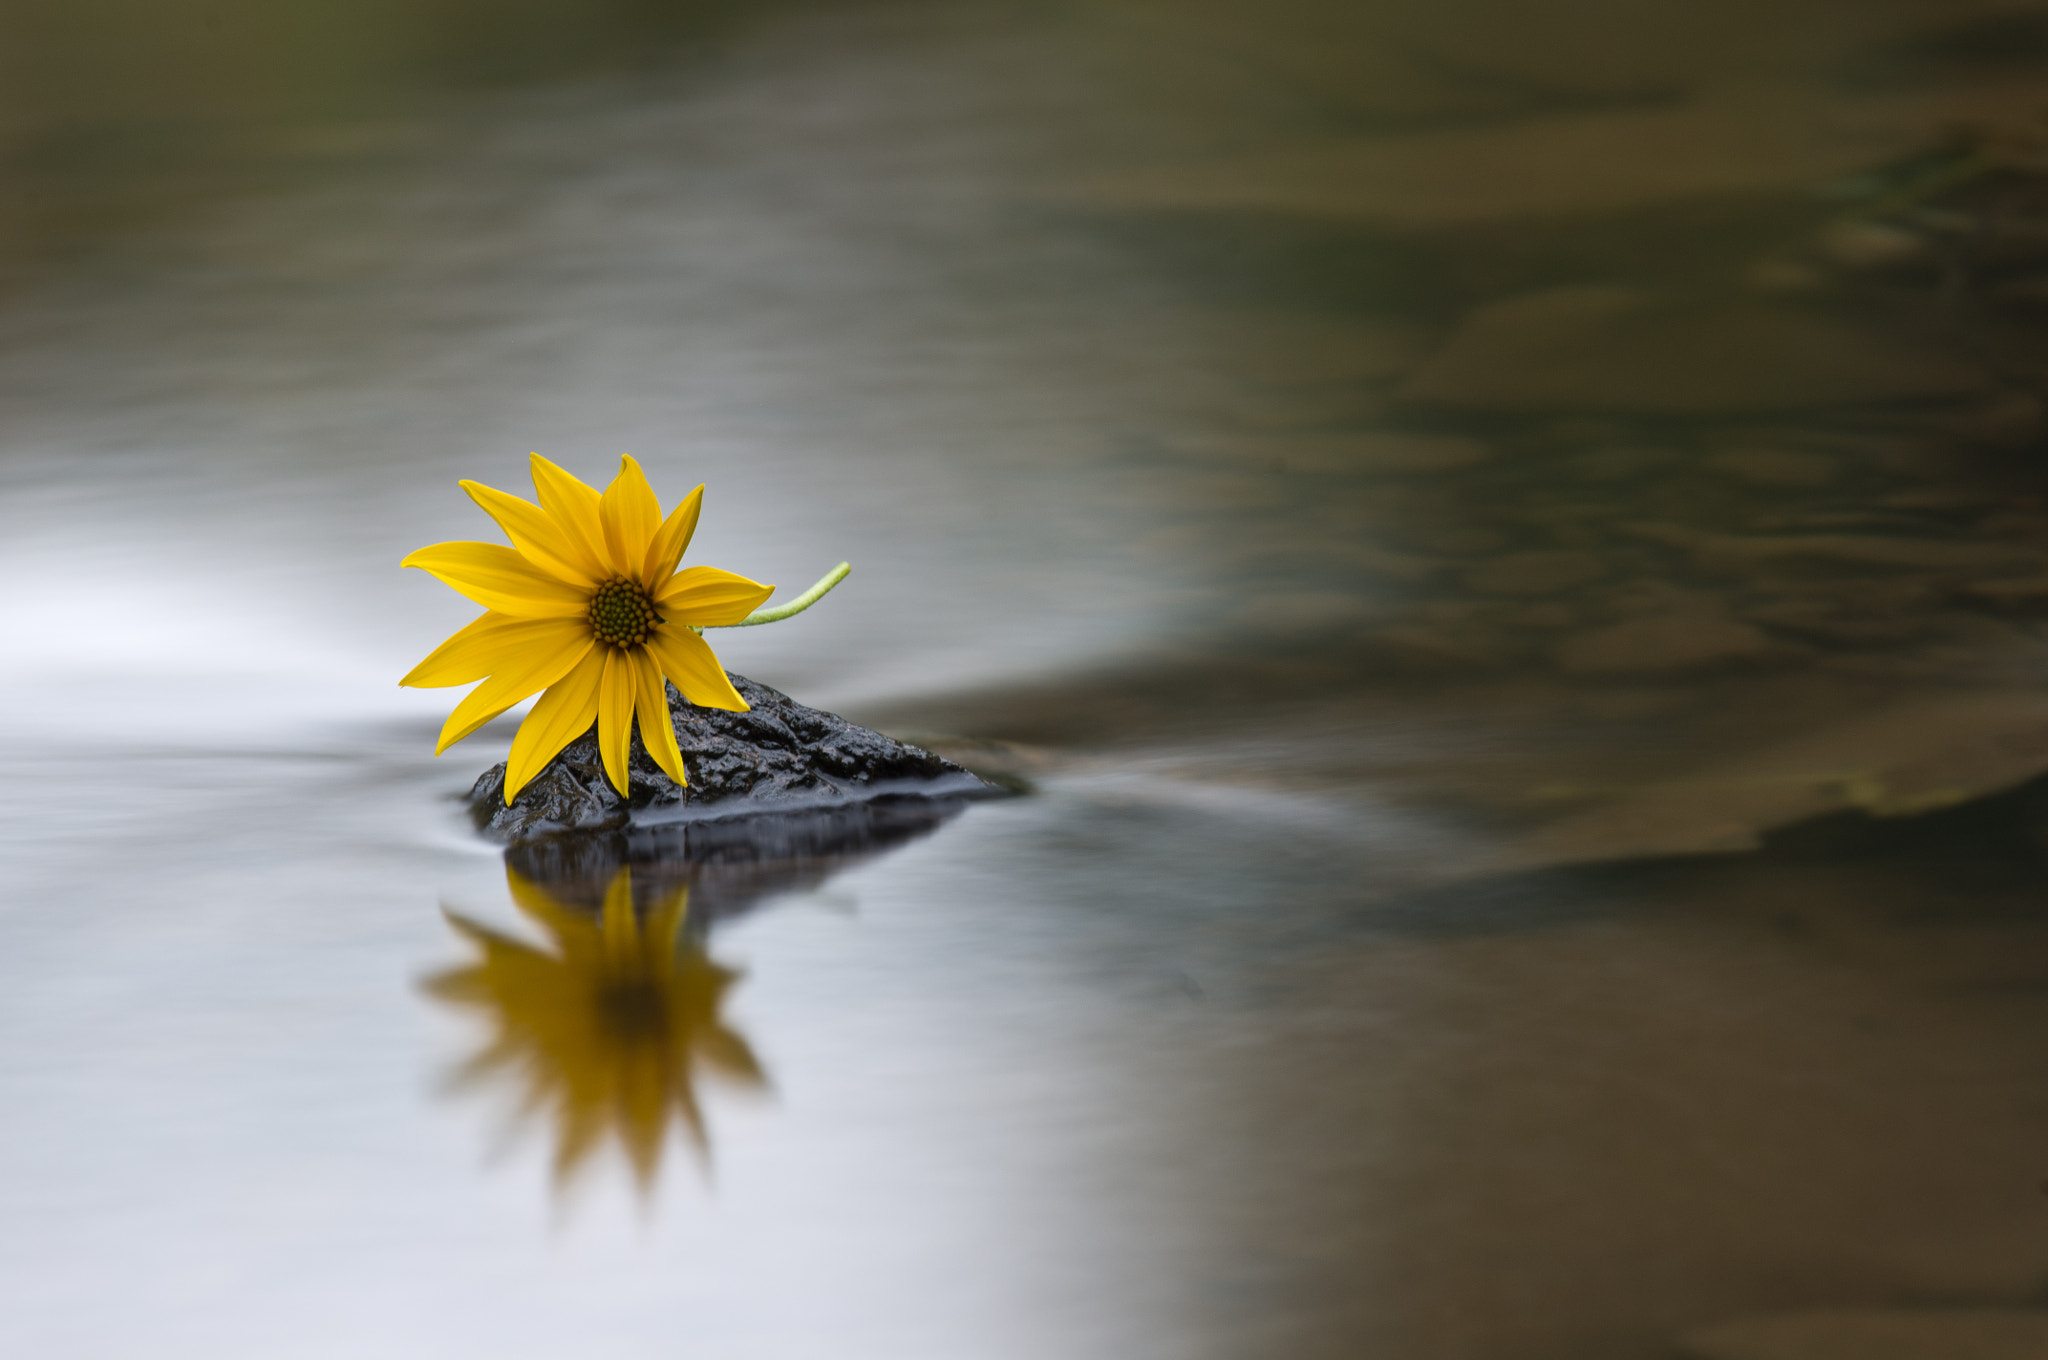 Photograph Flowery Reflection by Philipp Burgkart on 500px